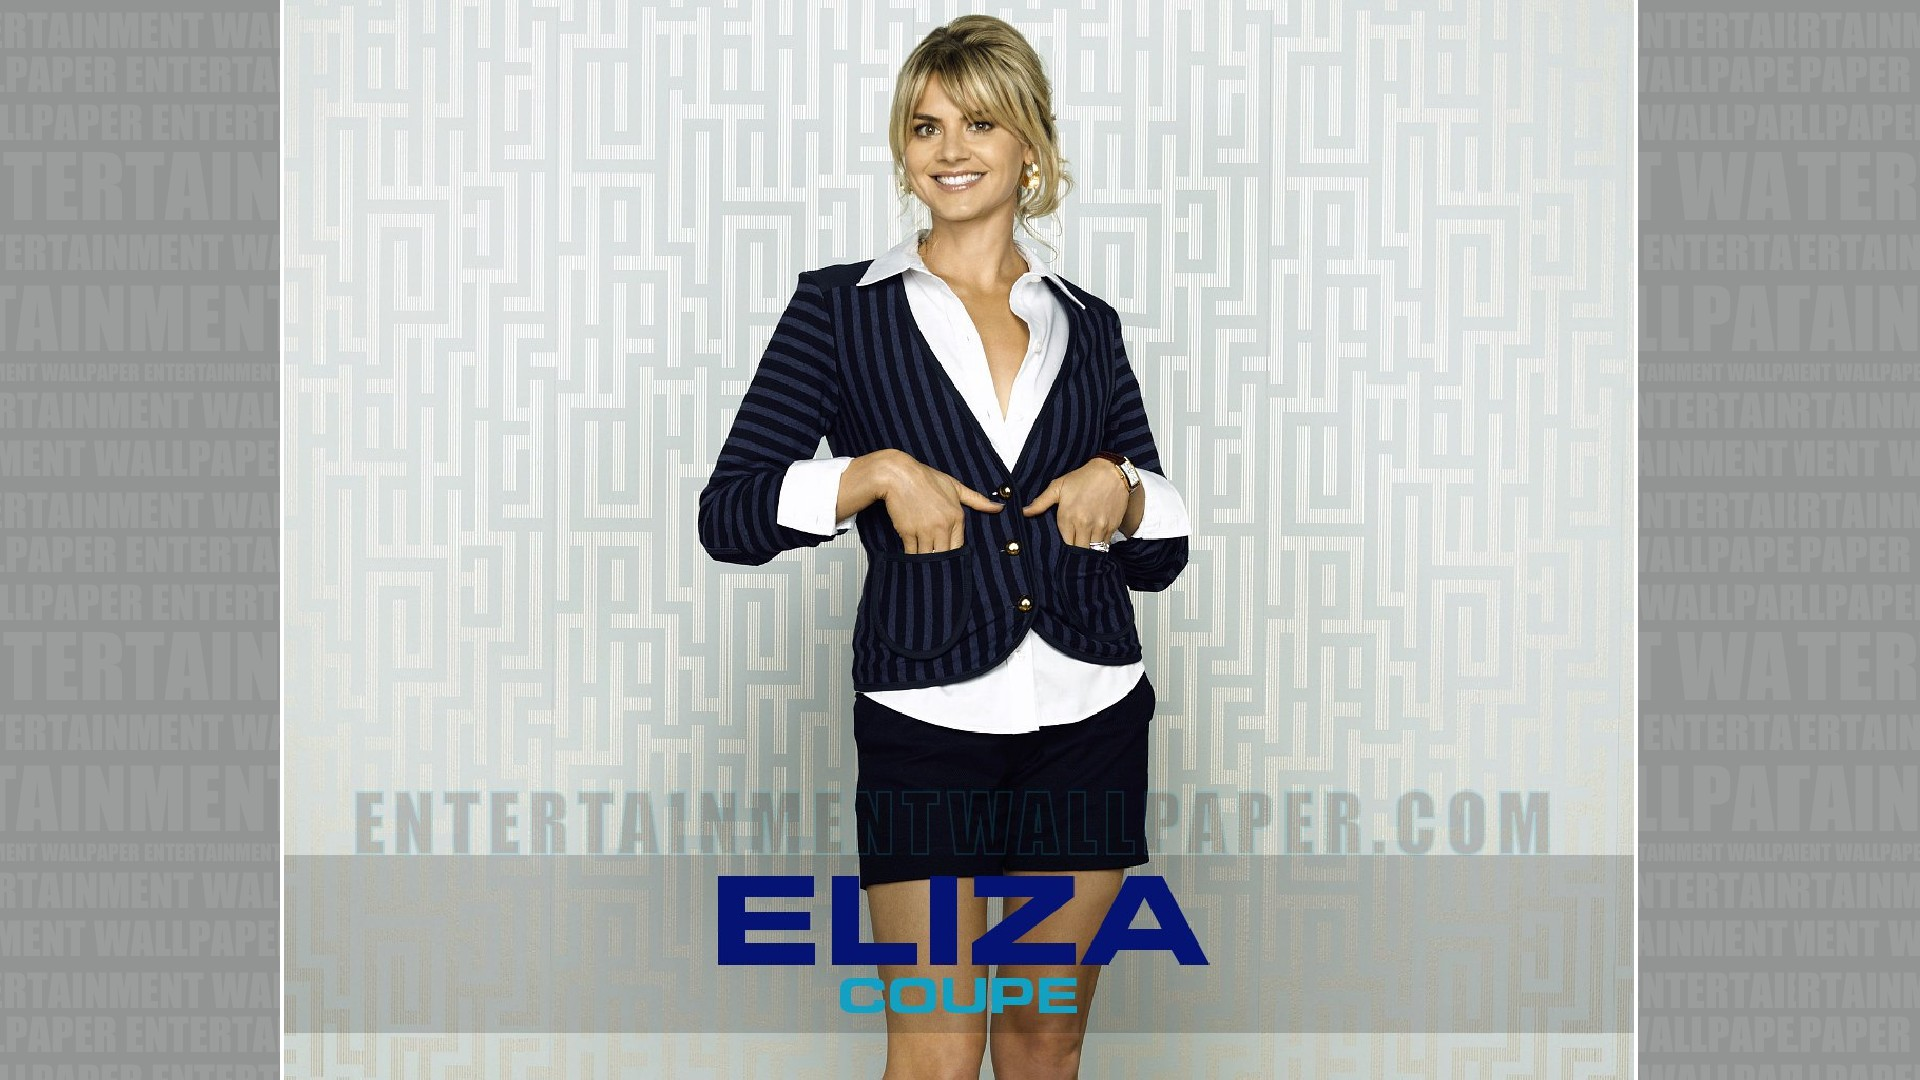 1920x1080 - Eliza Coupe Wallpapers 10